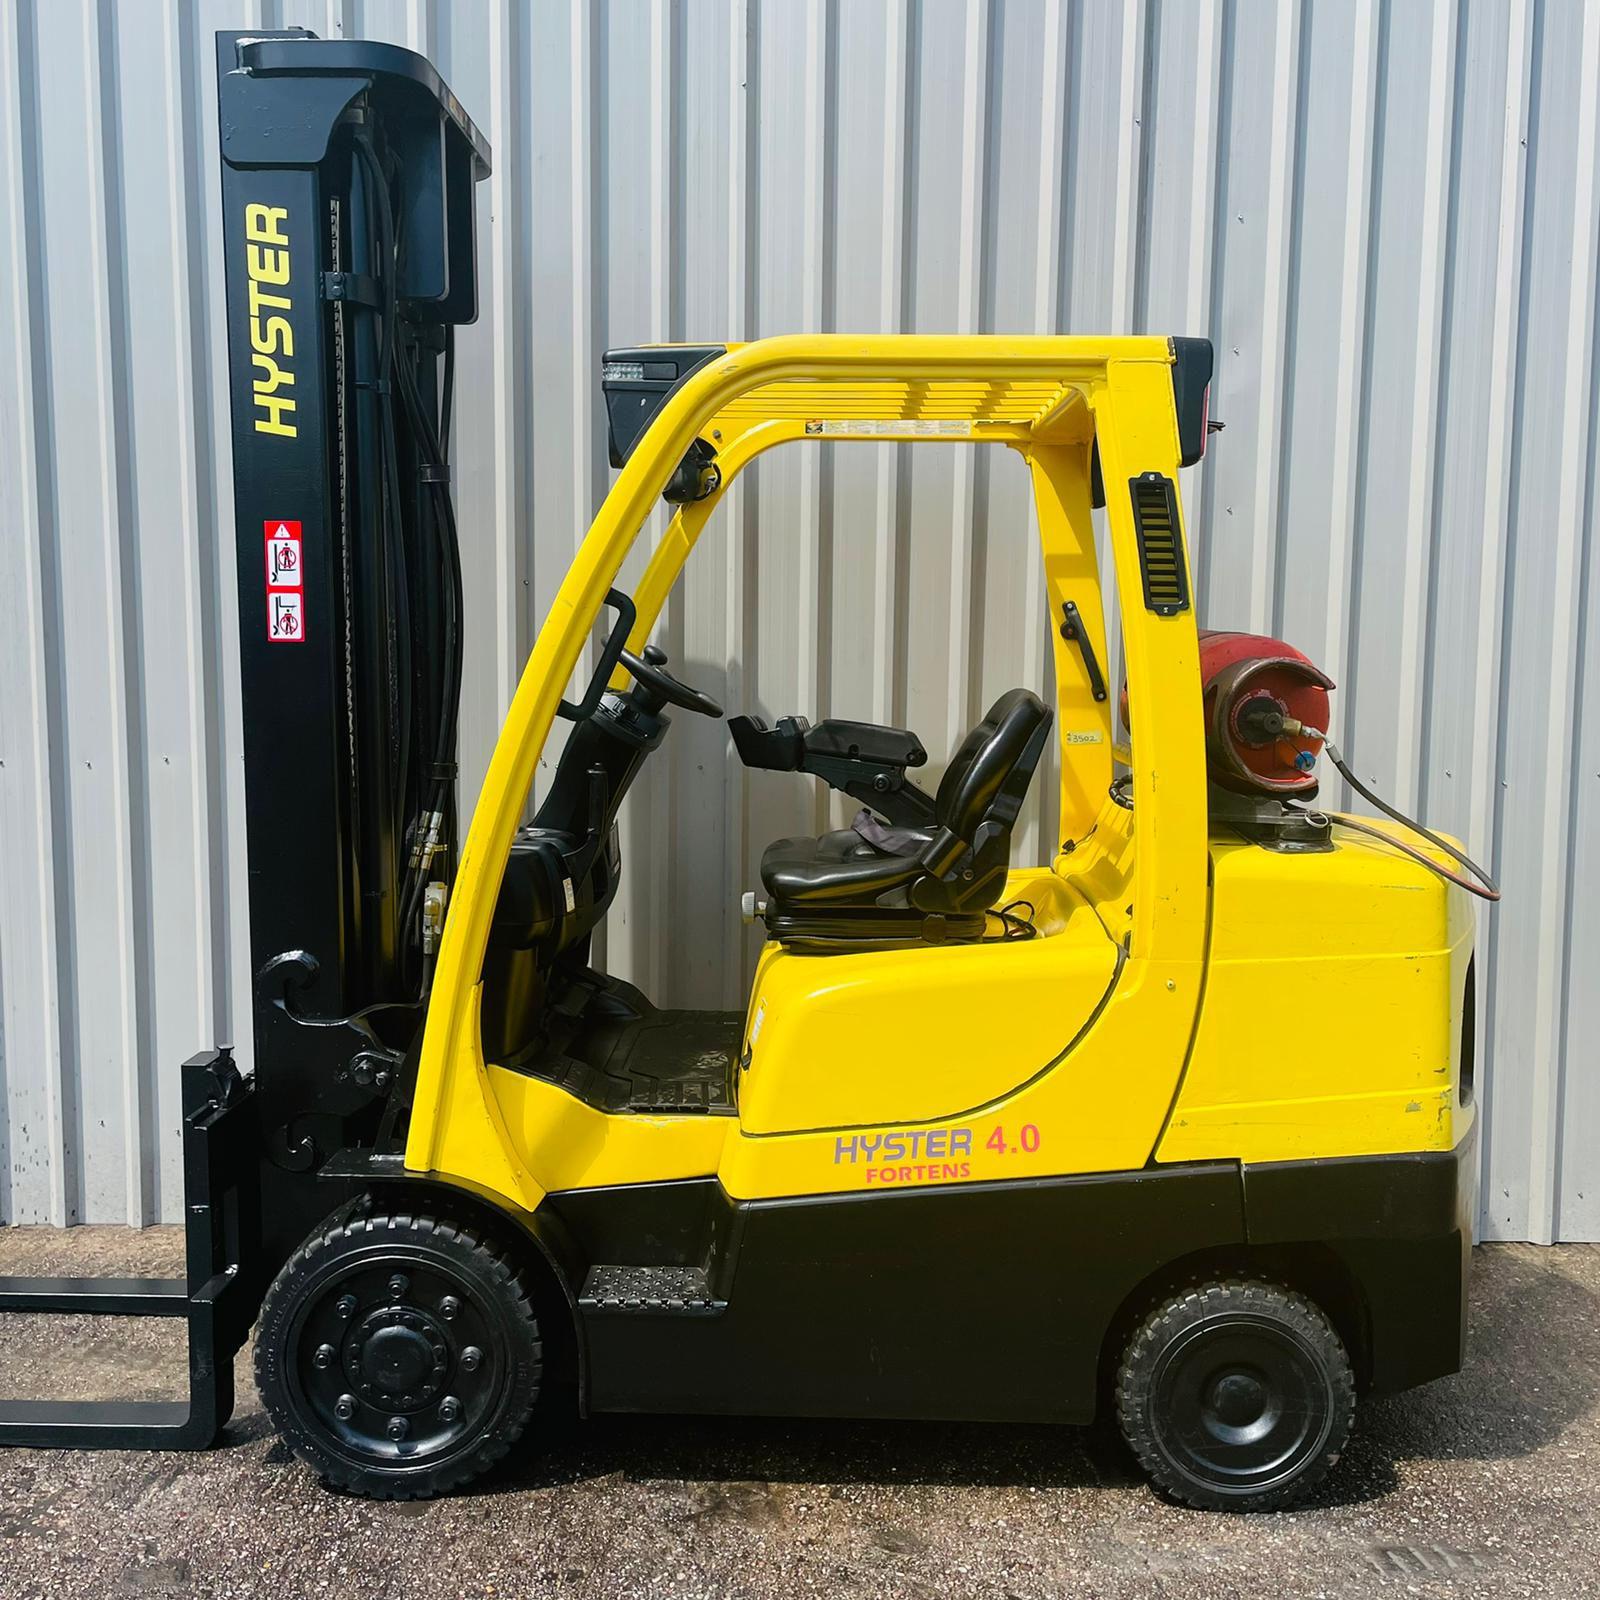 HYSTER S4.0FT #3502 WhatsApp Image 2021-06-23 at 2.27.33 PM (1)